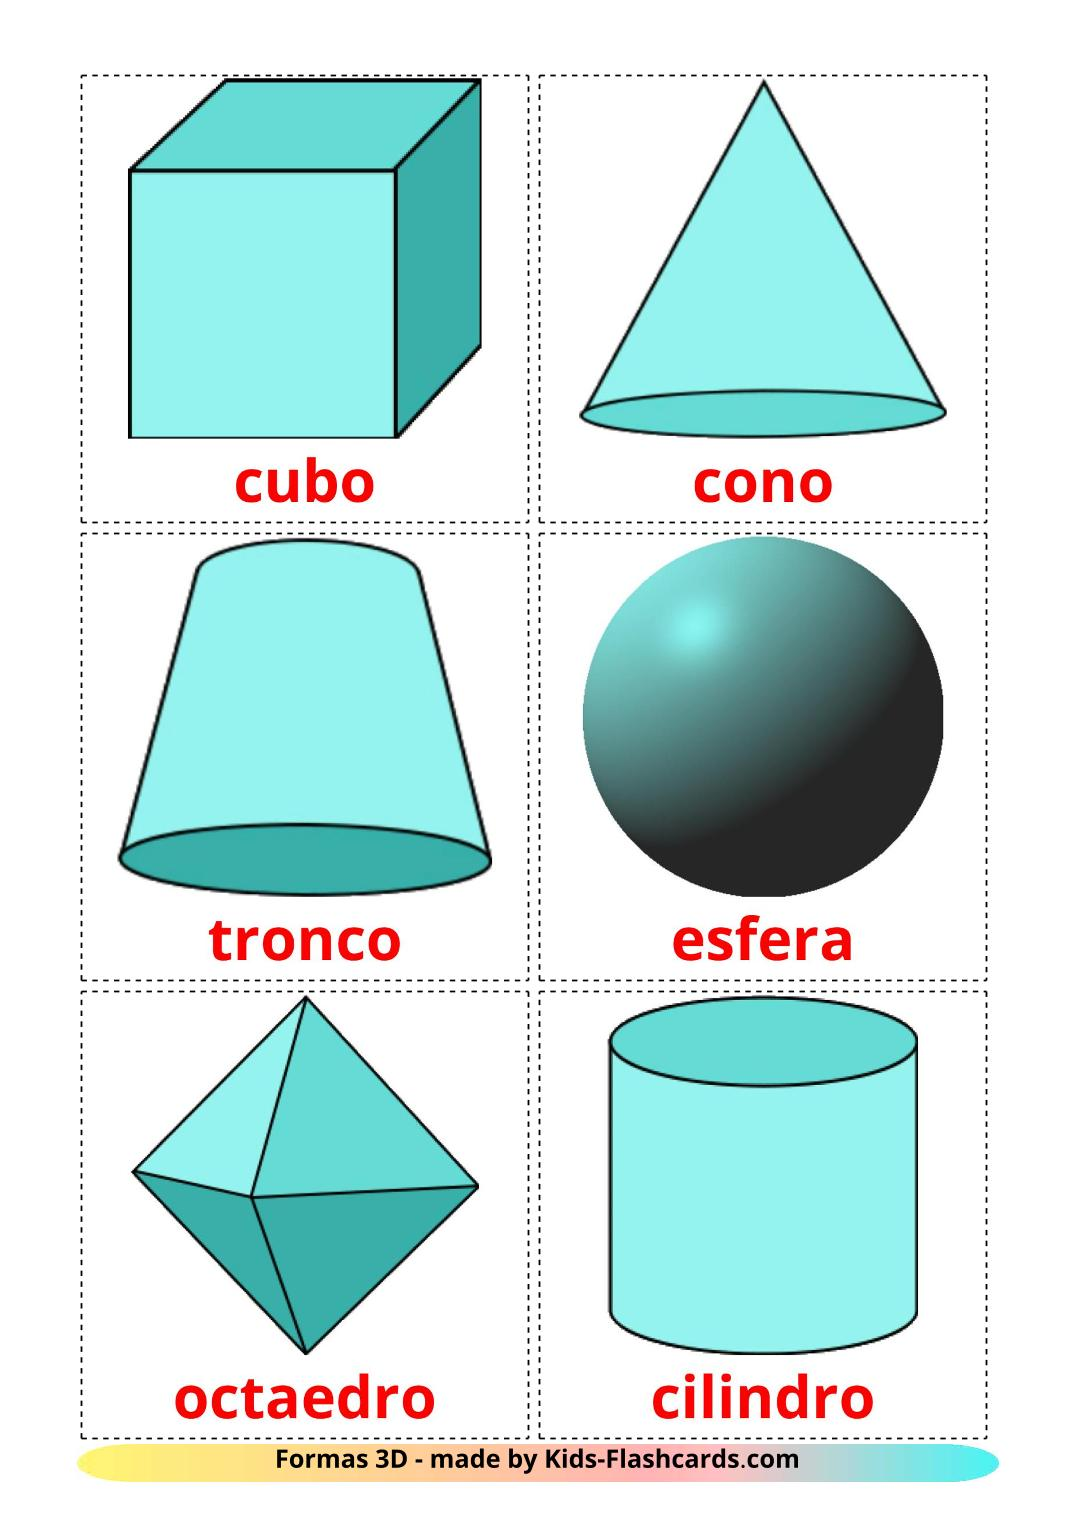 3D Shapes - 17 Free Printable spanish Flashcards